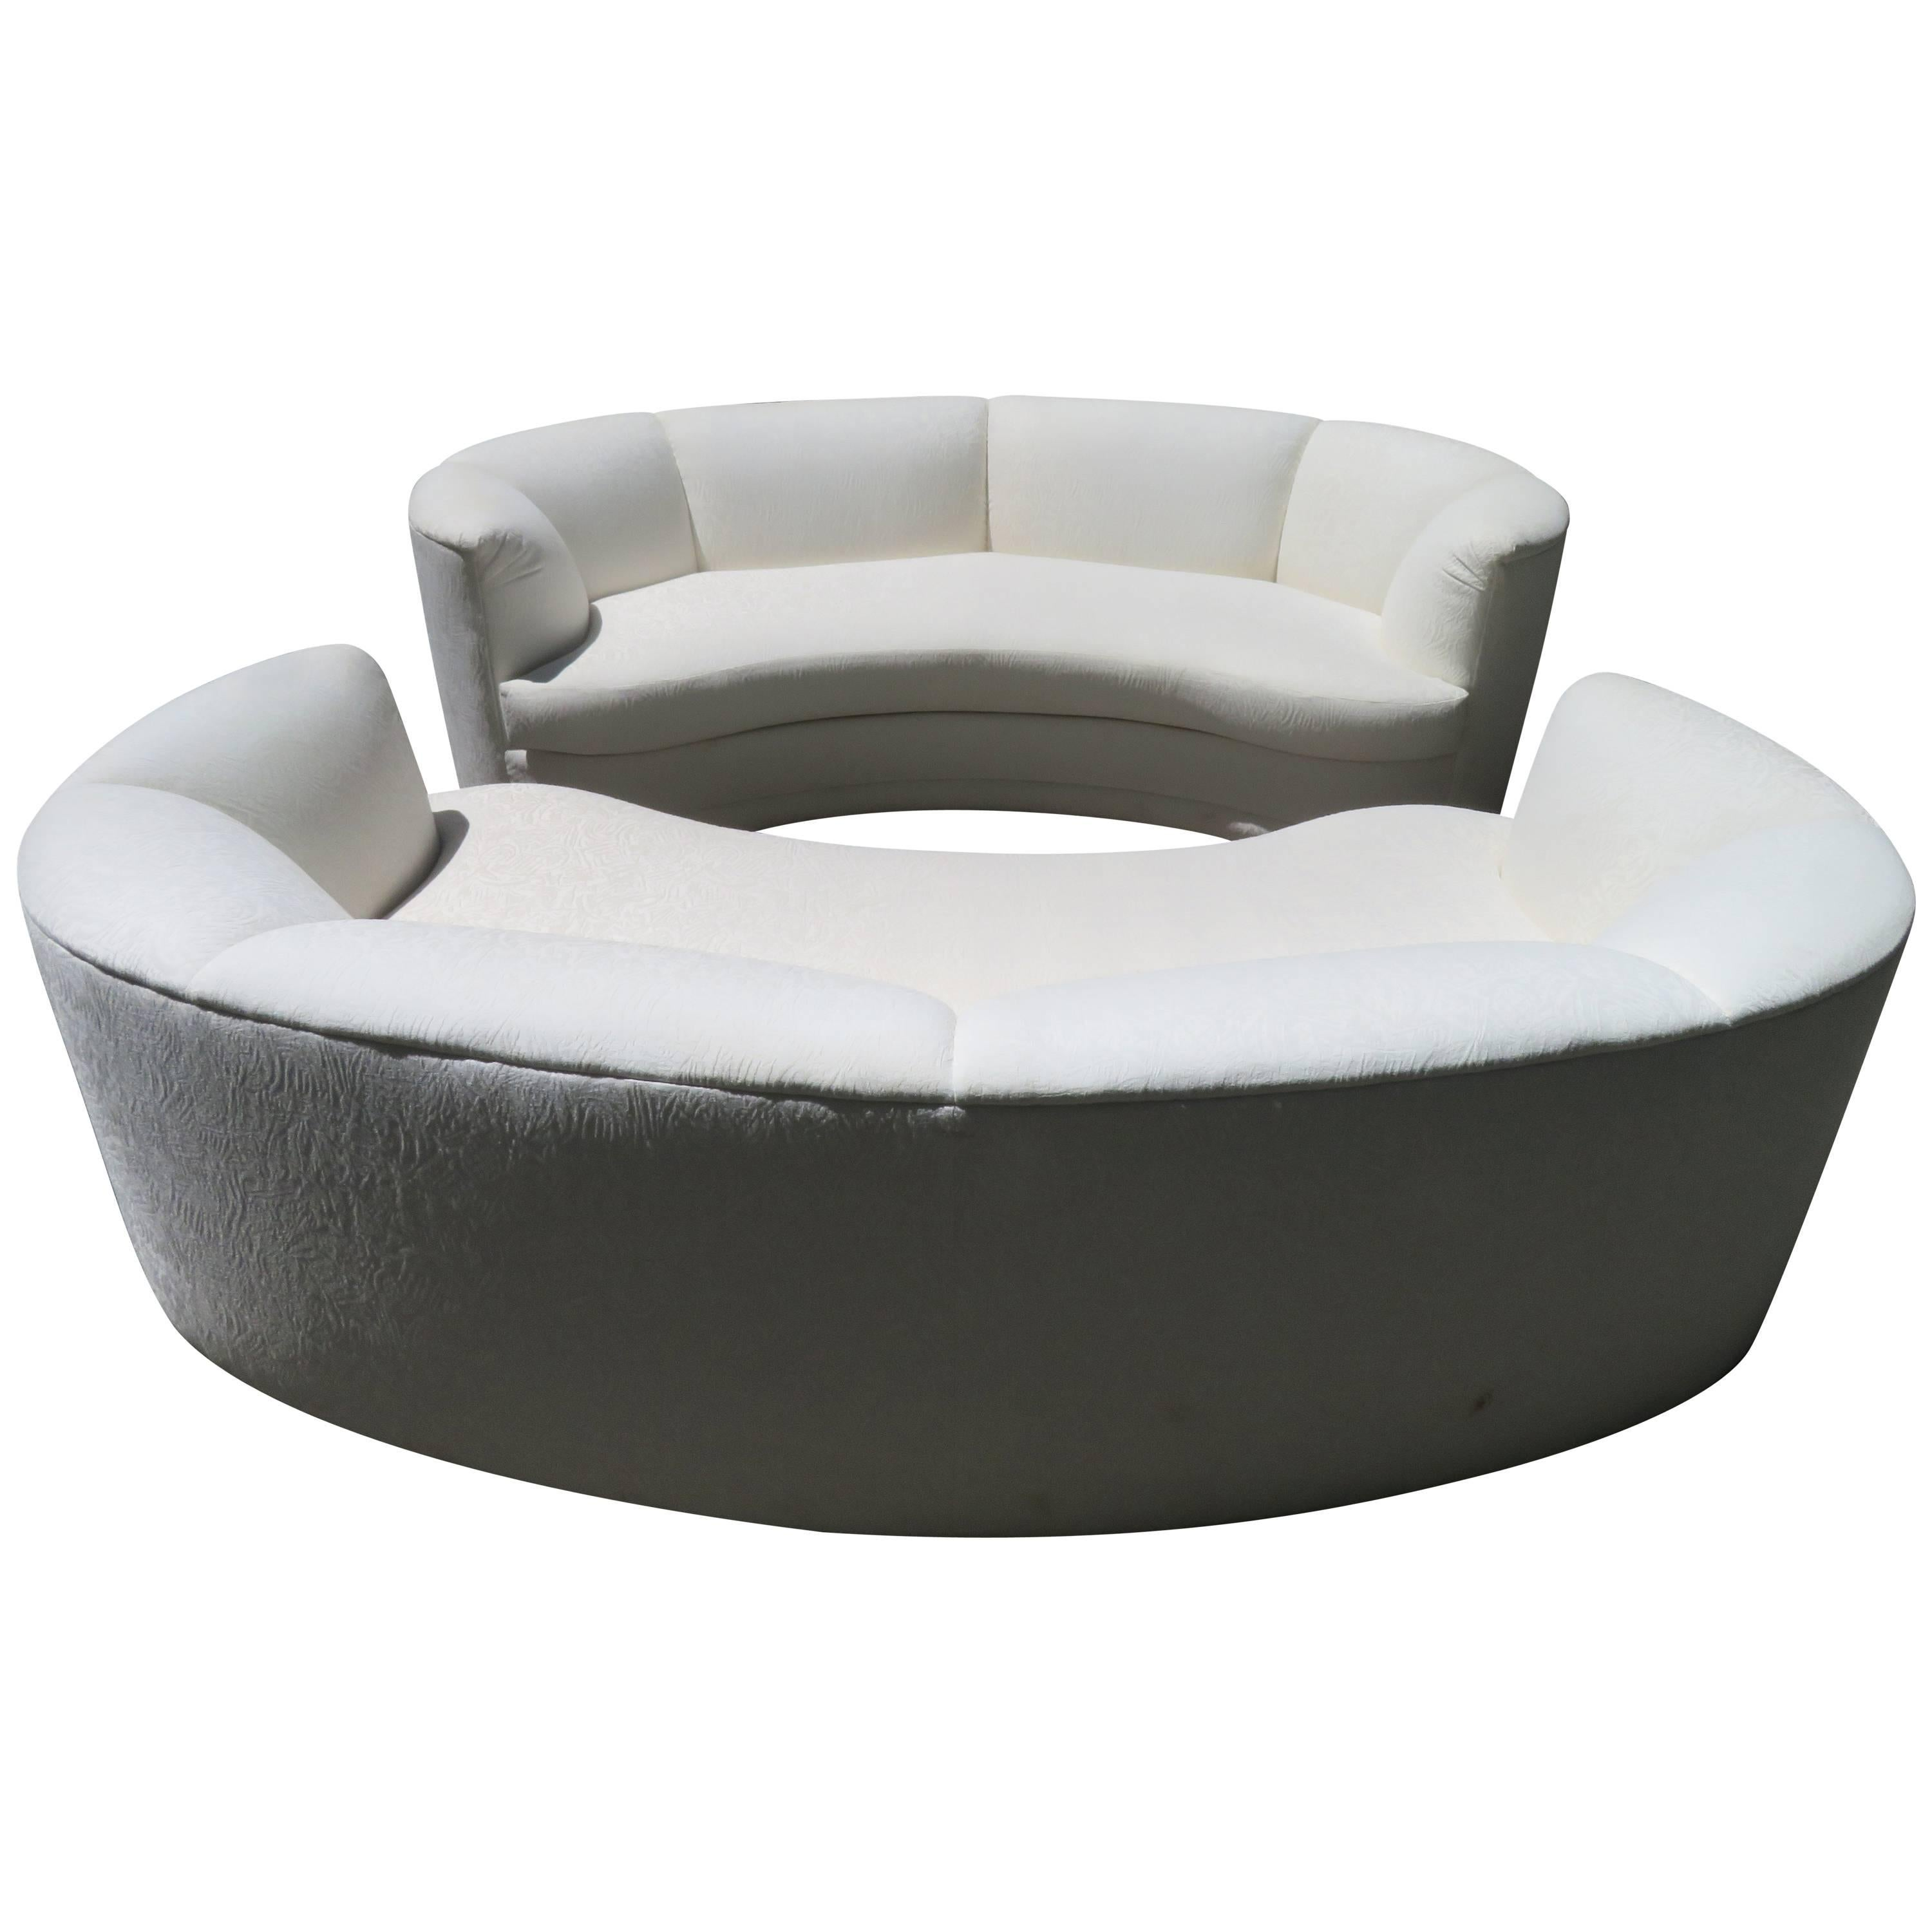 Pair of Curved Kidney Shaped Sofas Mid-Century Modern